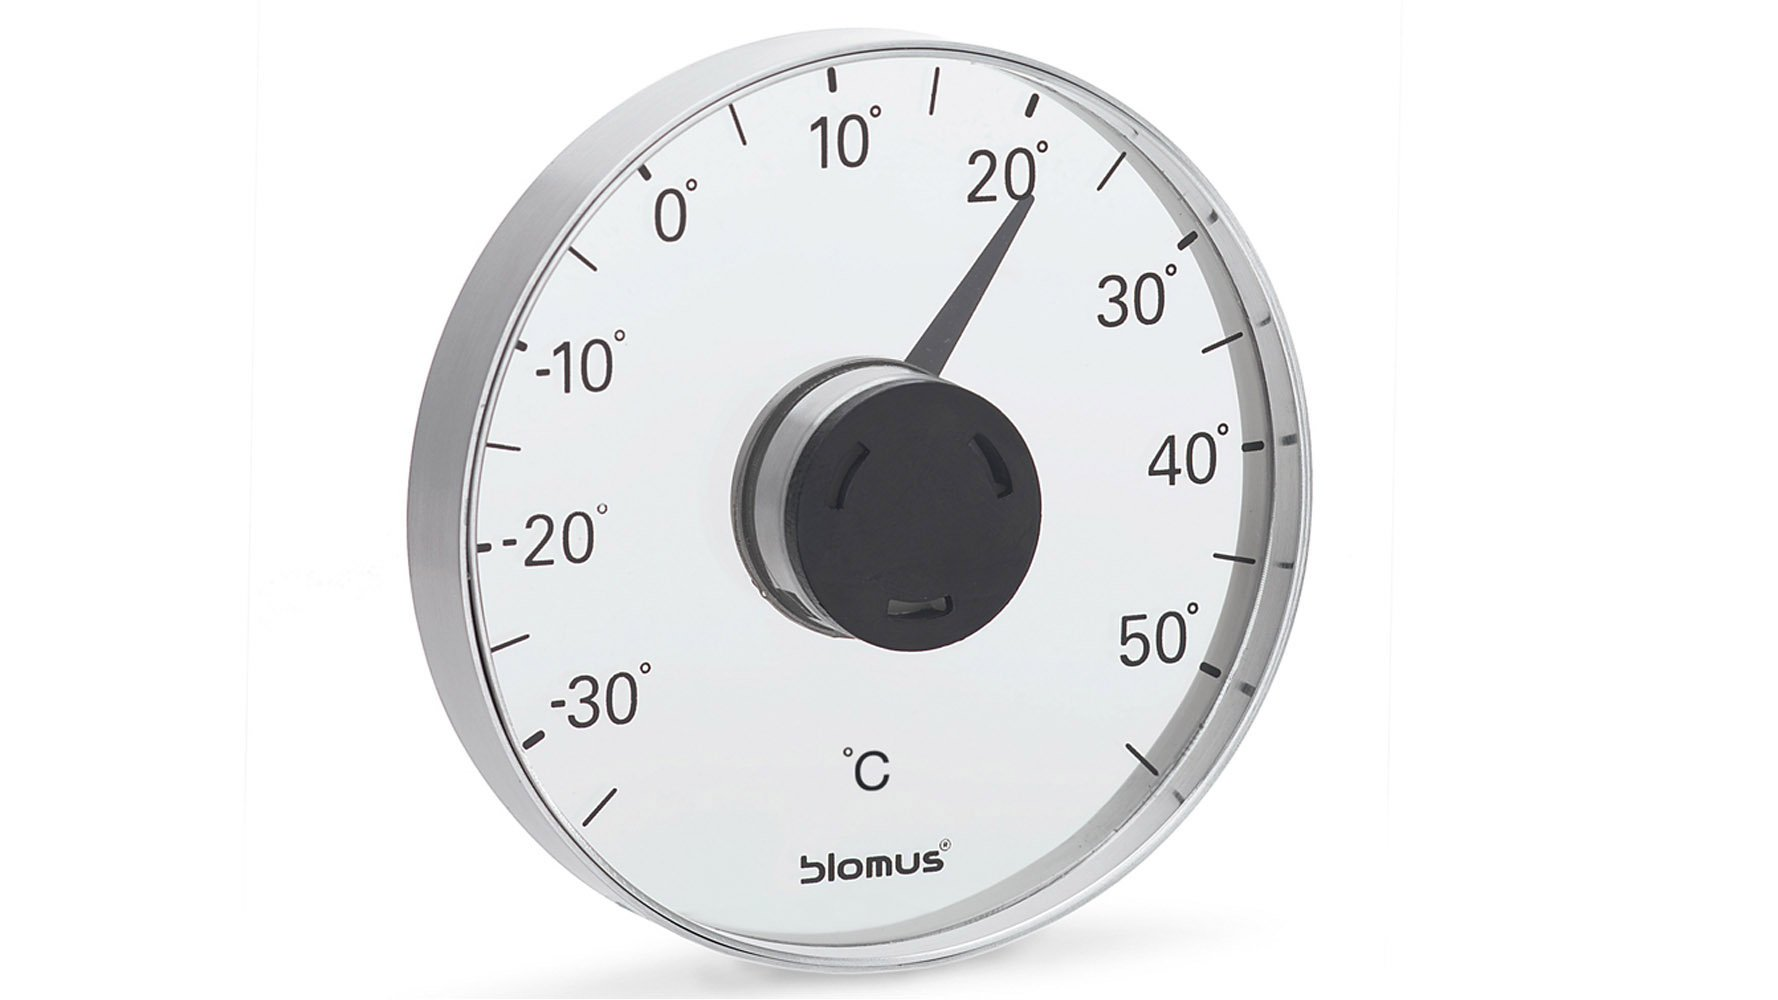 Blomus 65246 Window Thermometer, Celsius